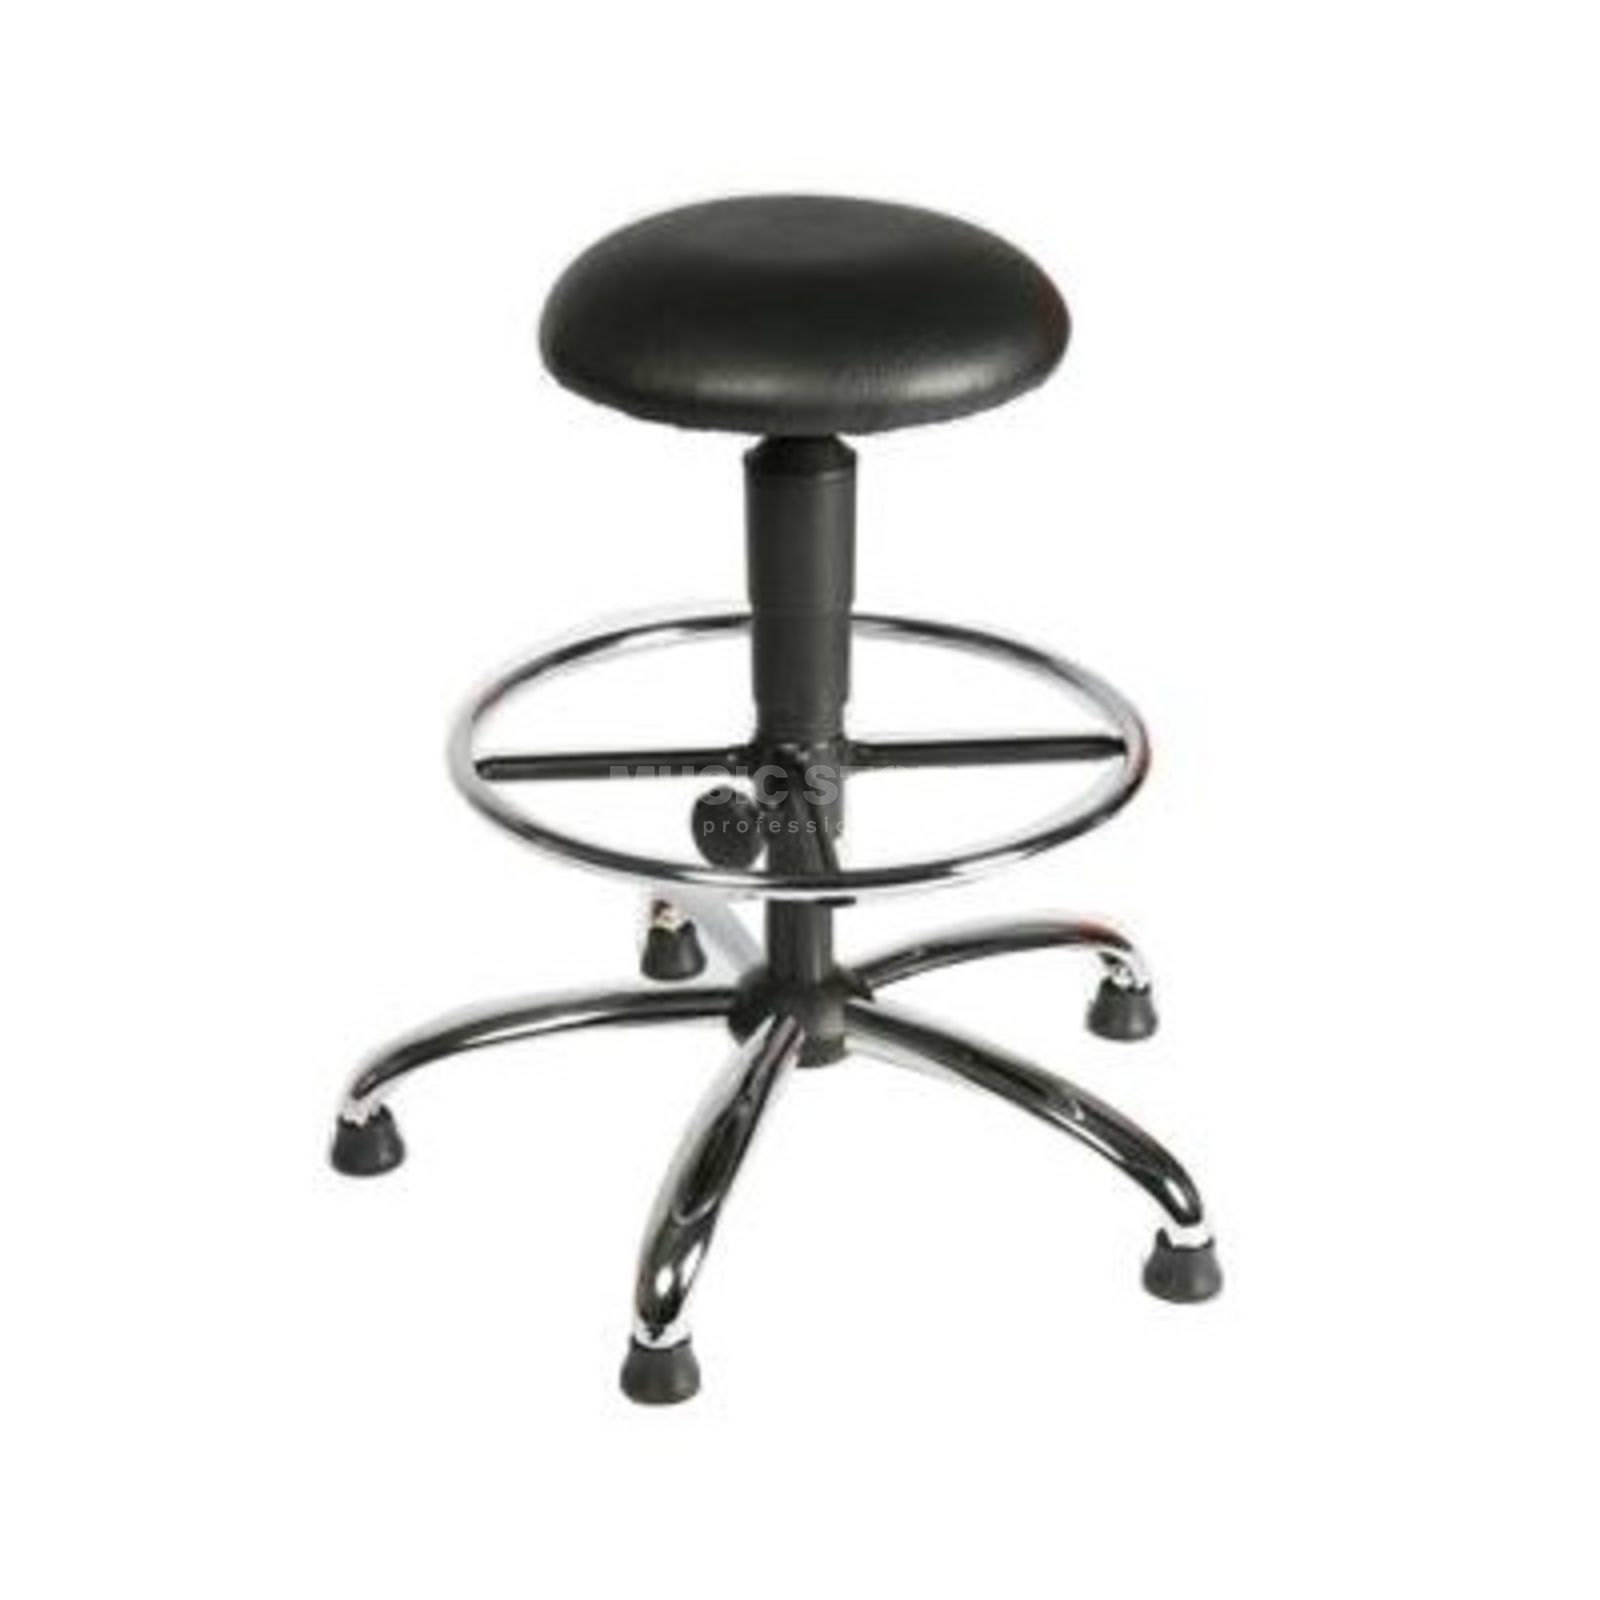 Mey Chair Systems Hocker A18-H-KL-FR5/11-34 negro Imagen del producto